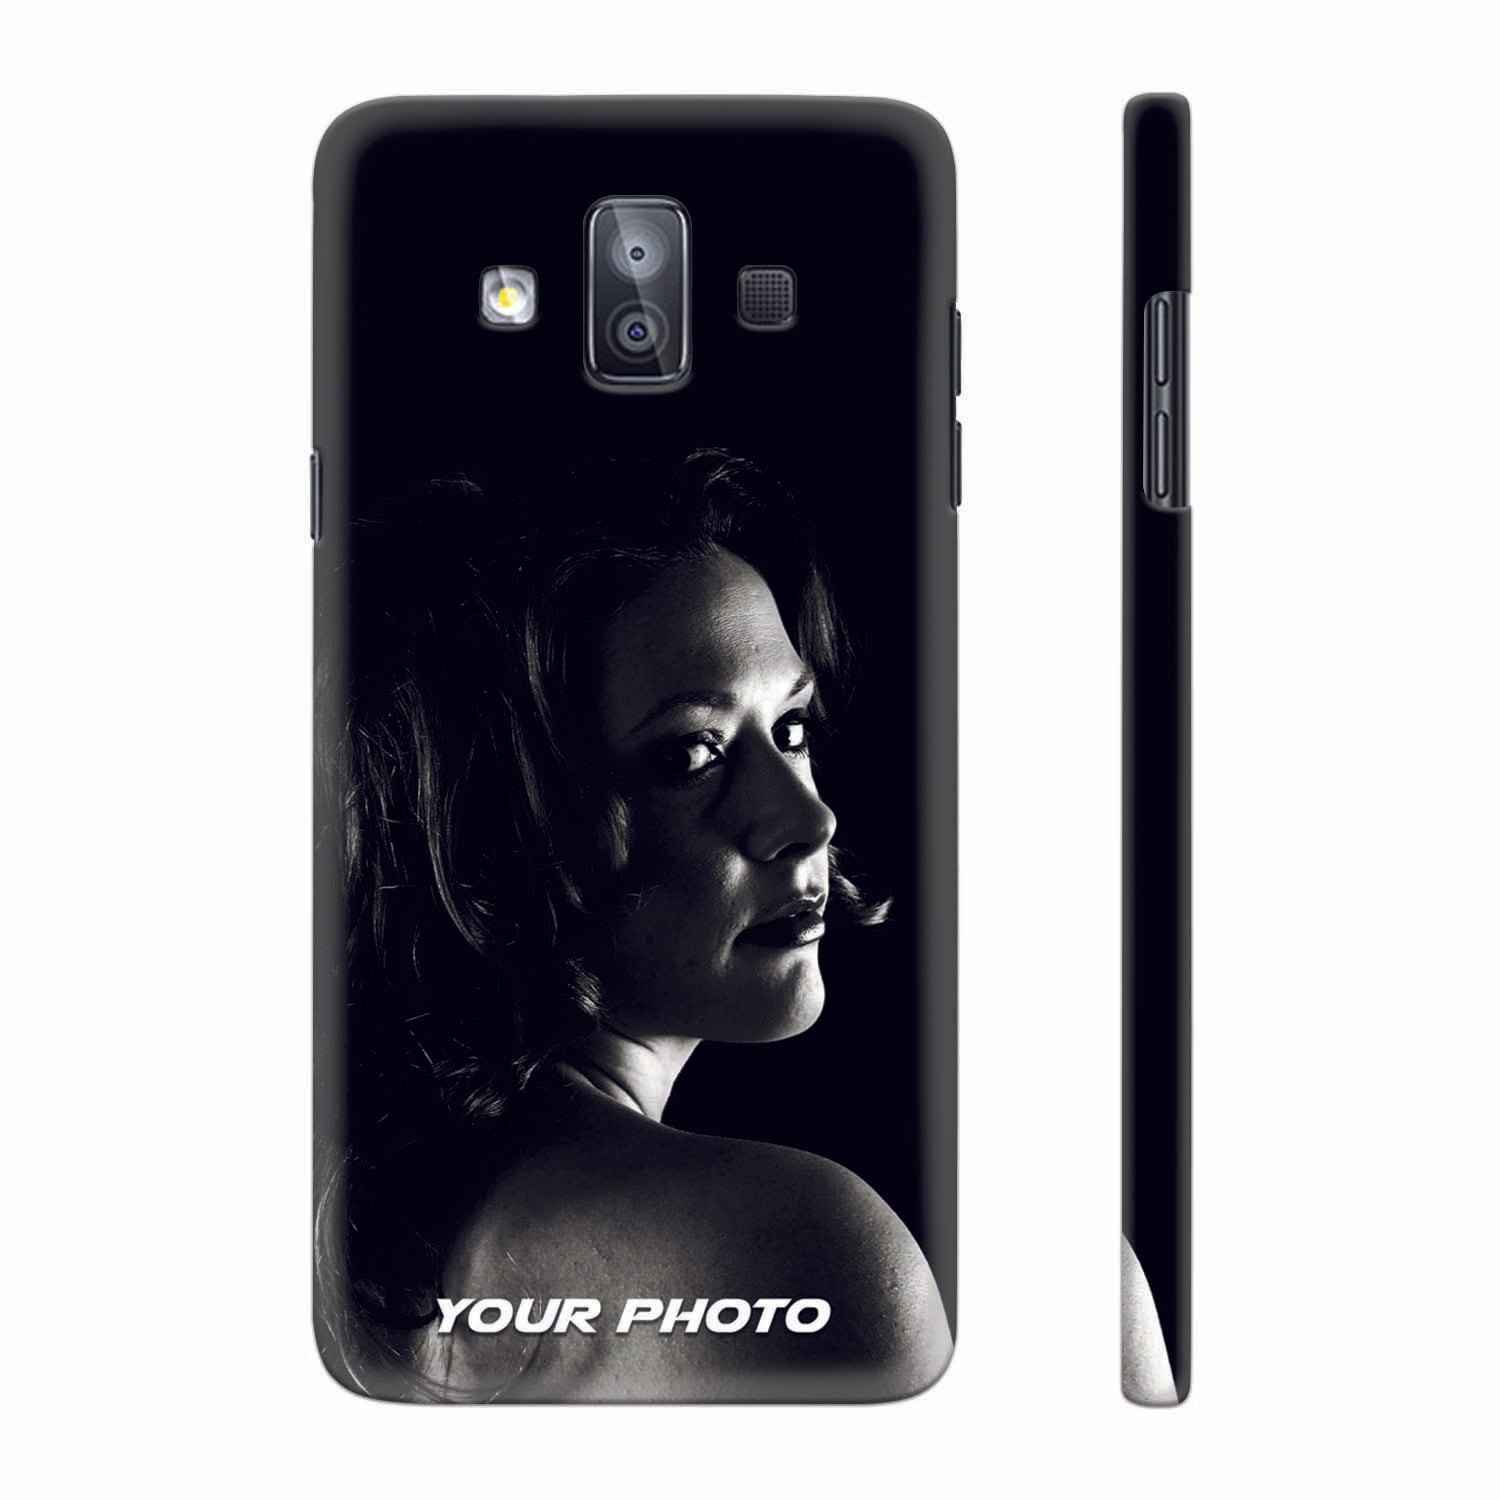 brand new aa993 7d378 Mobile Cover with Your Photo for Samsung Galaxy J7 Duo